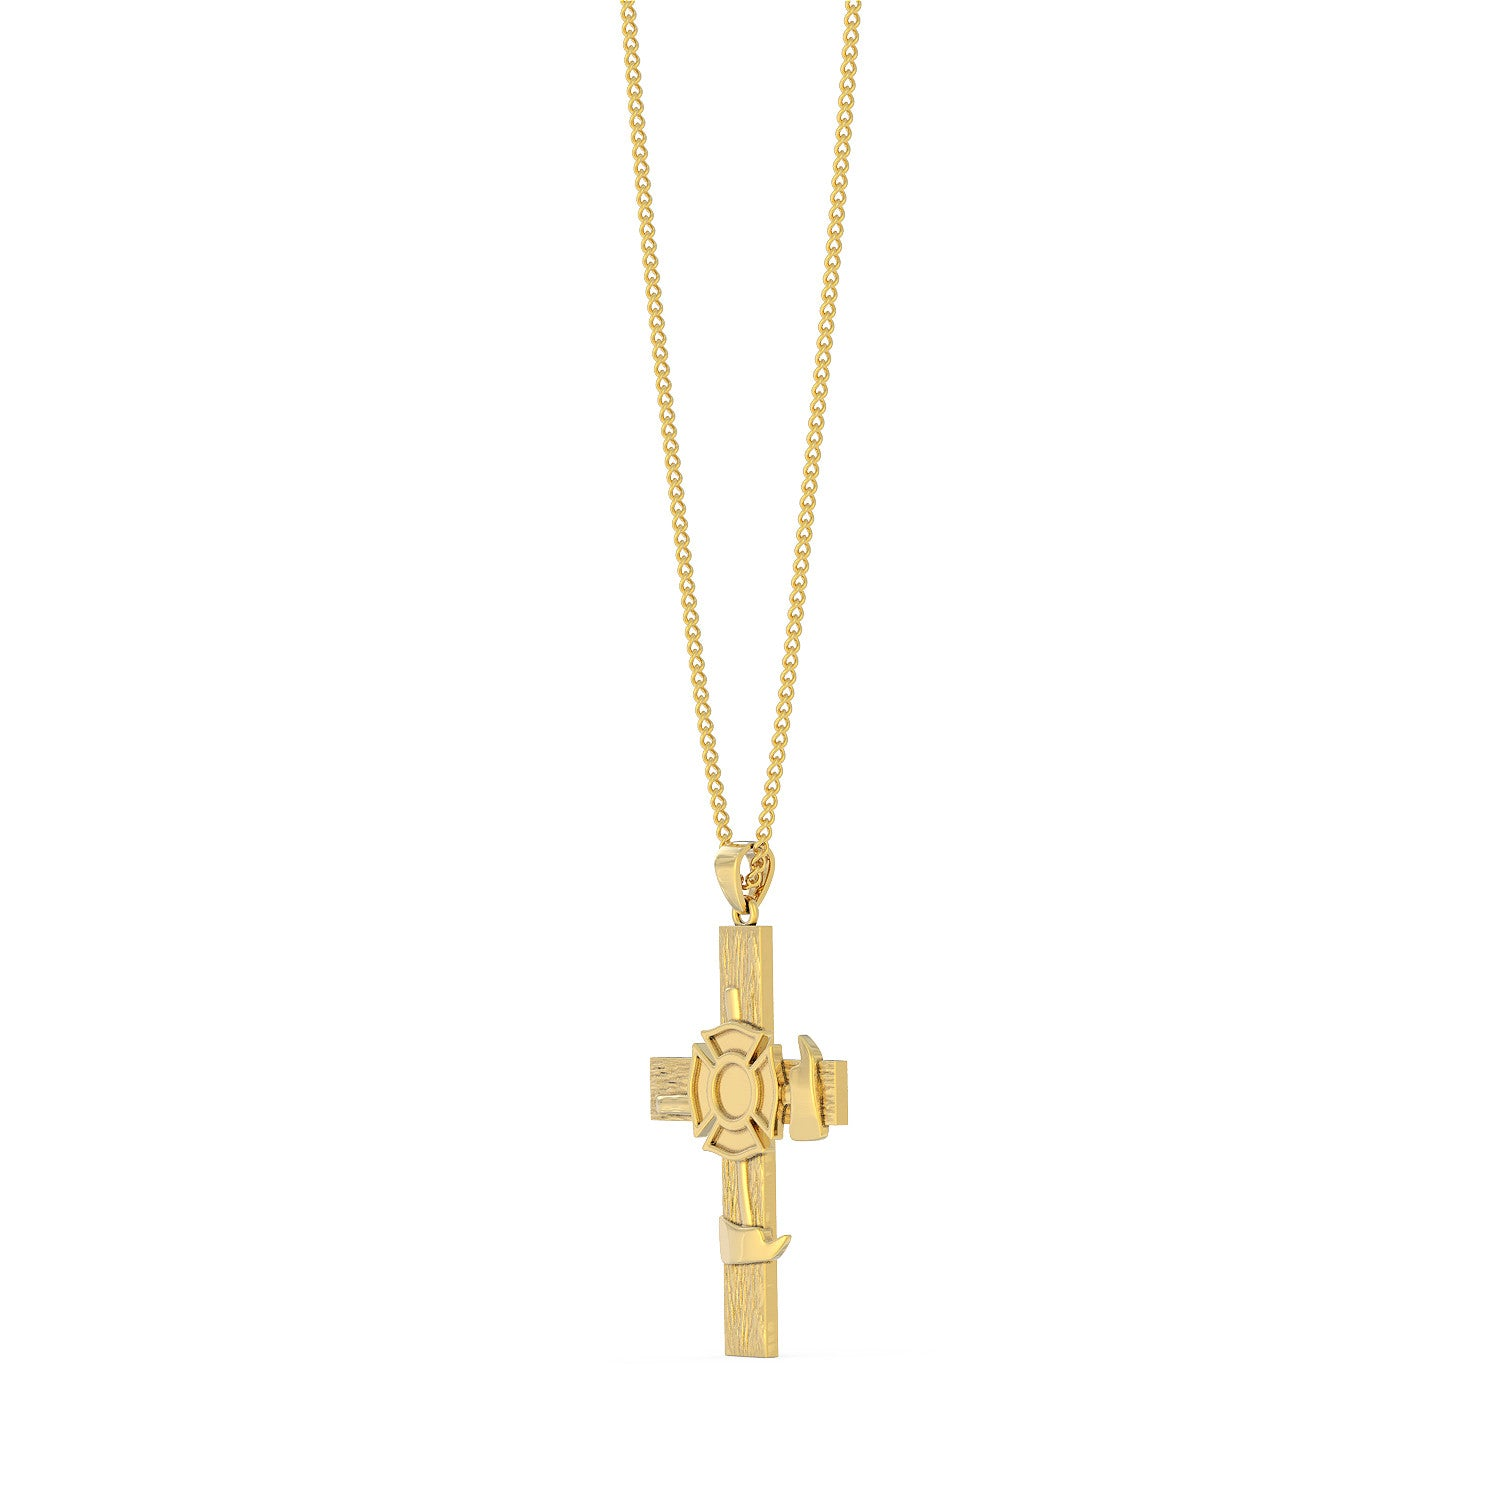 Firefighter Cross Pendant Necklace